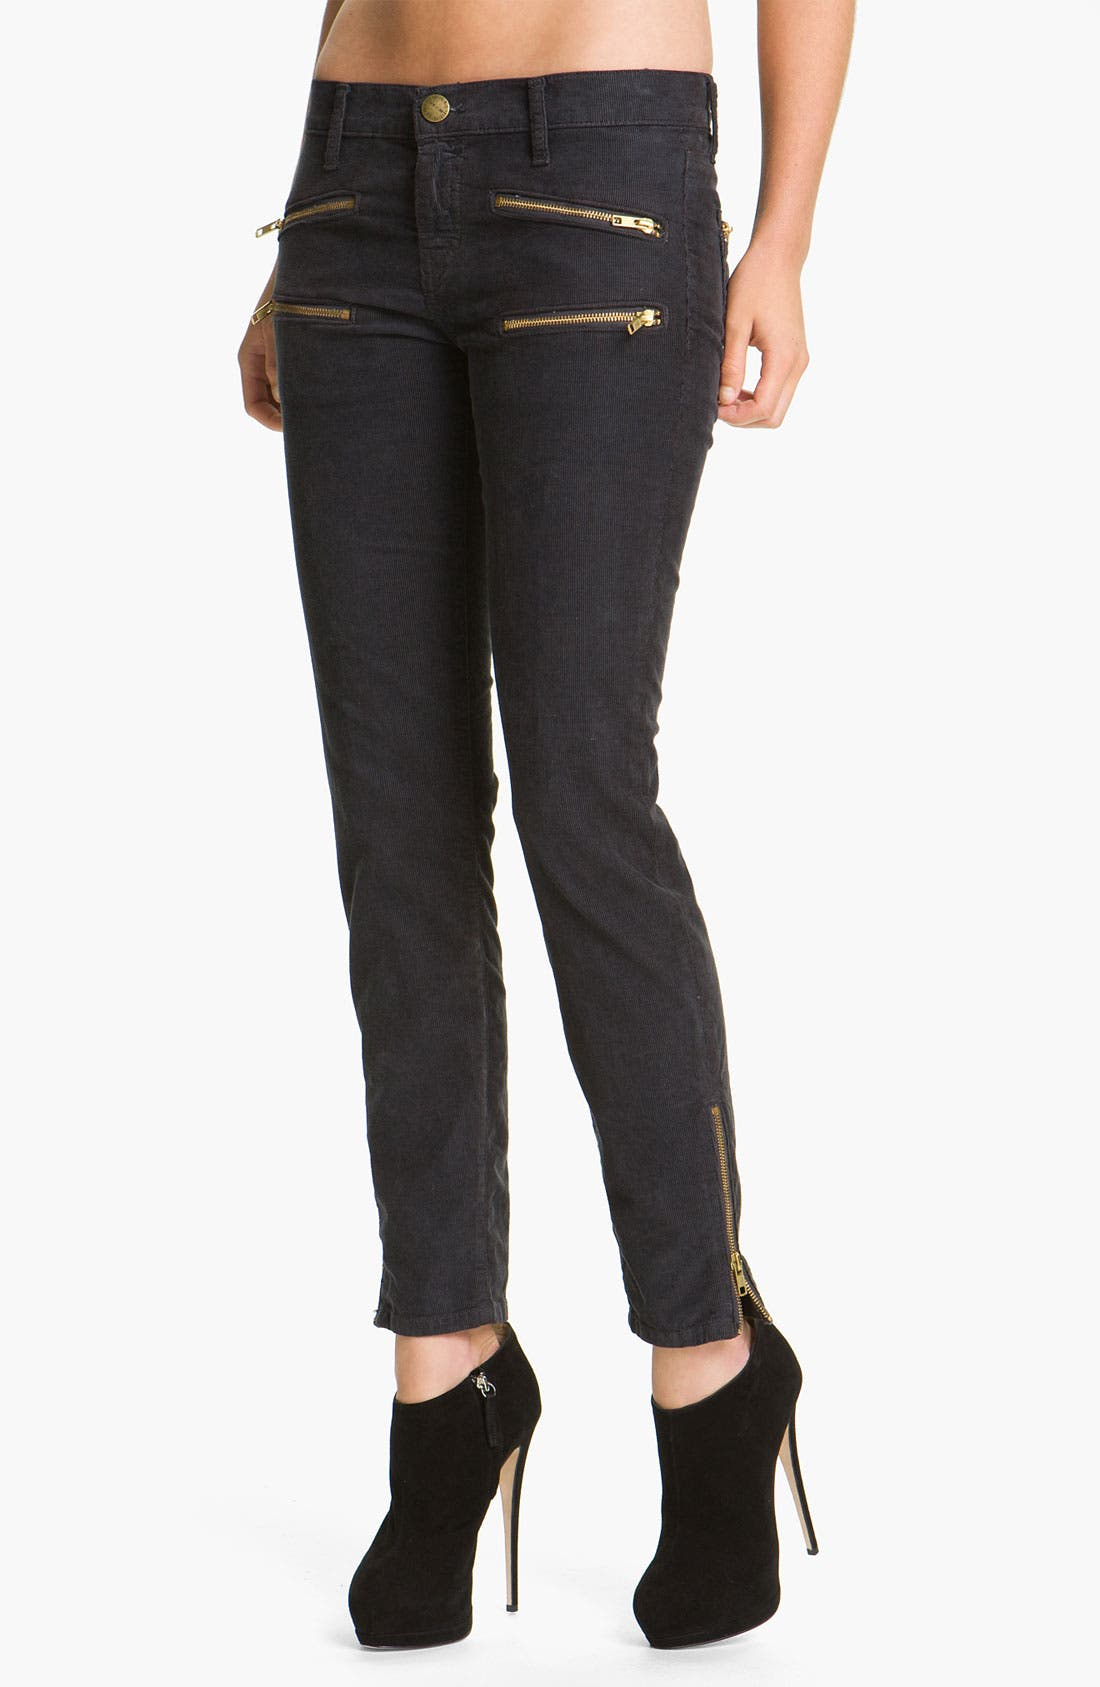 Alternate Image 1 Selected - Current/Elliott 'The Stiletto' Moto Skinny Jeans (Shadow)